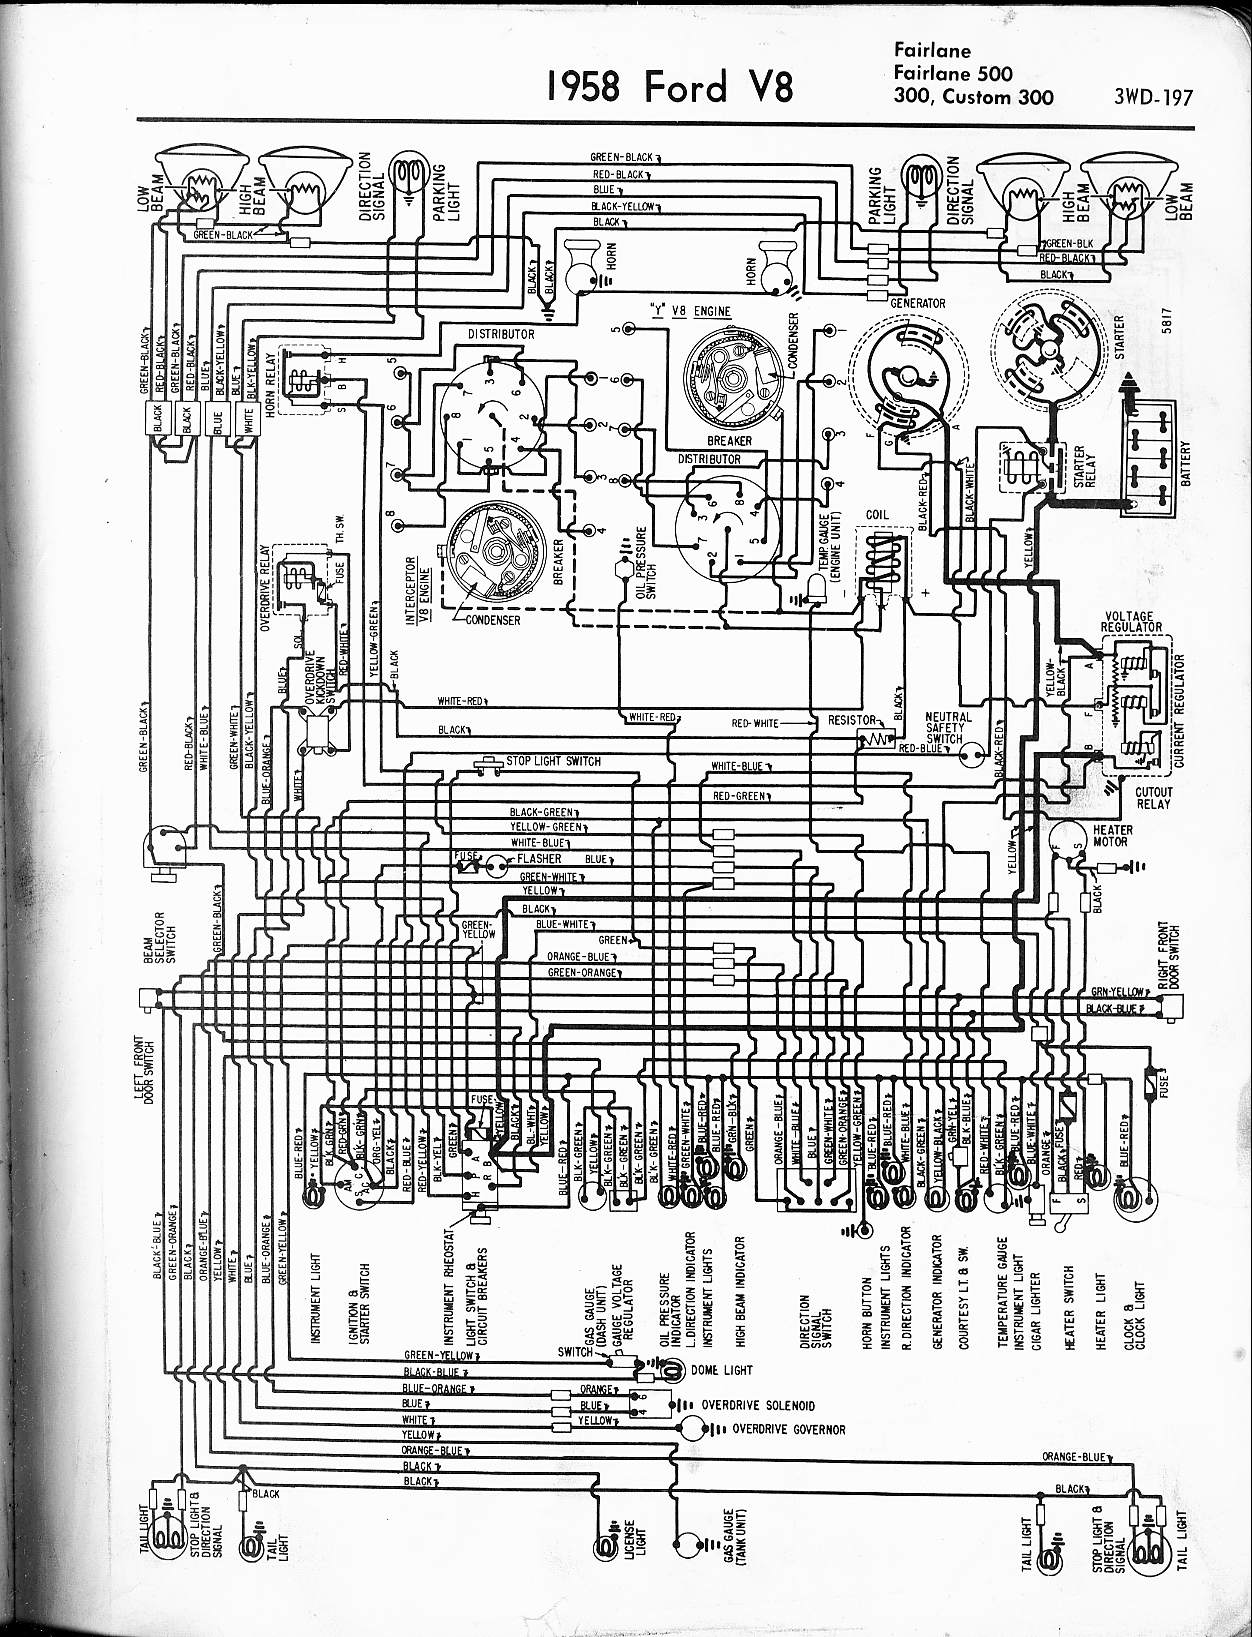 57 65 Ford Wiring Diagrams 1956 Plymouth Belvedere Wiring Diagram 1956 Ford  Fairlane Wiring Diagram